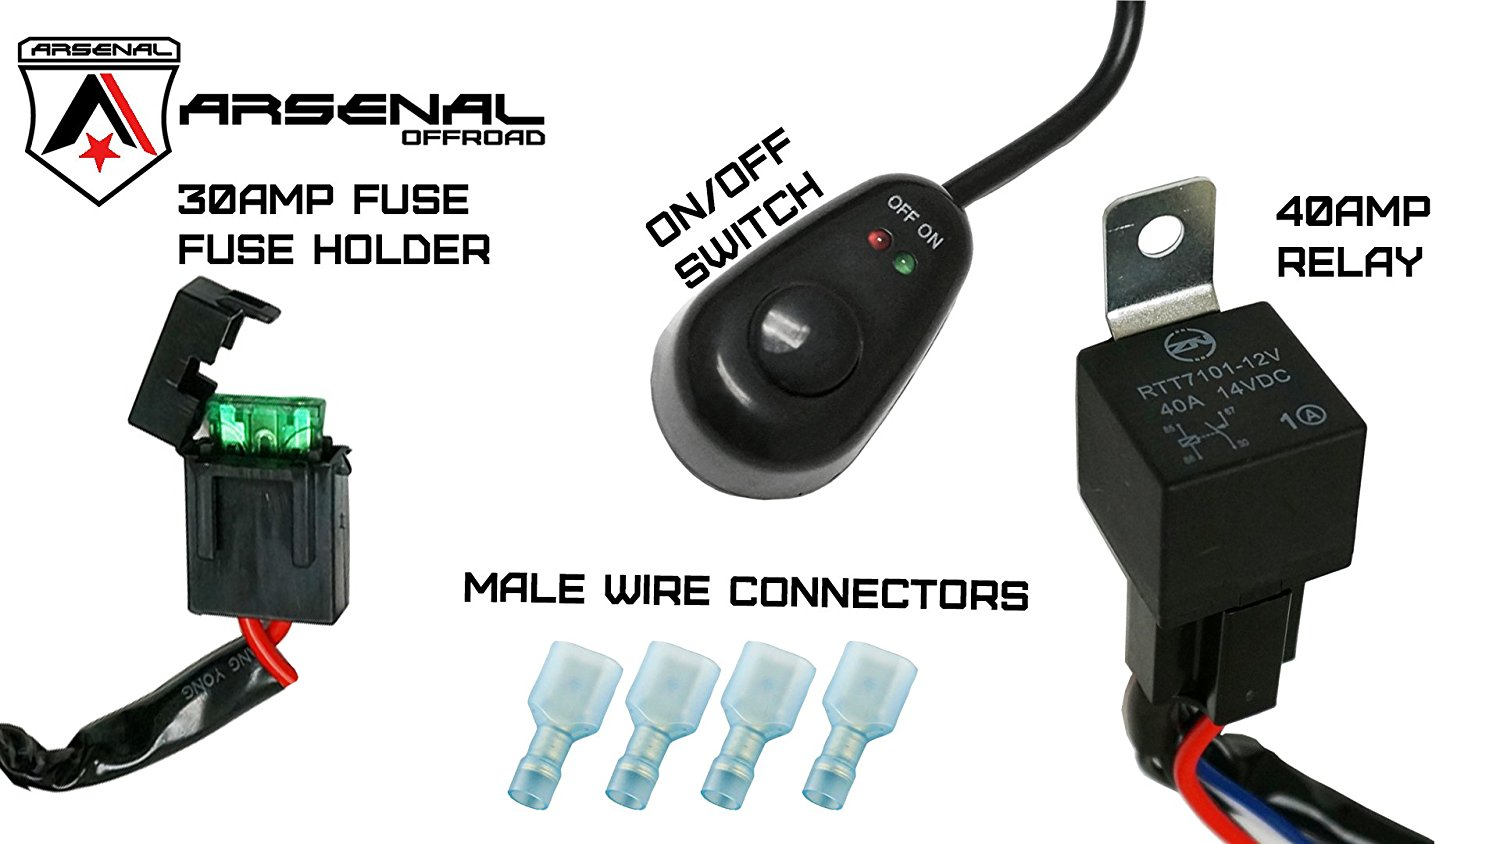 #1 nal Offroad LED Light Bar Universal Wiring Harness - 40 Amp Relay F Fog Light Switch And Relay Wiring Harness on